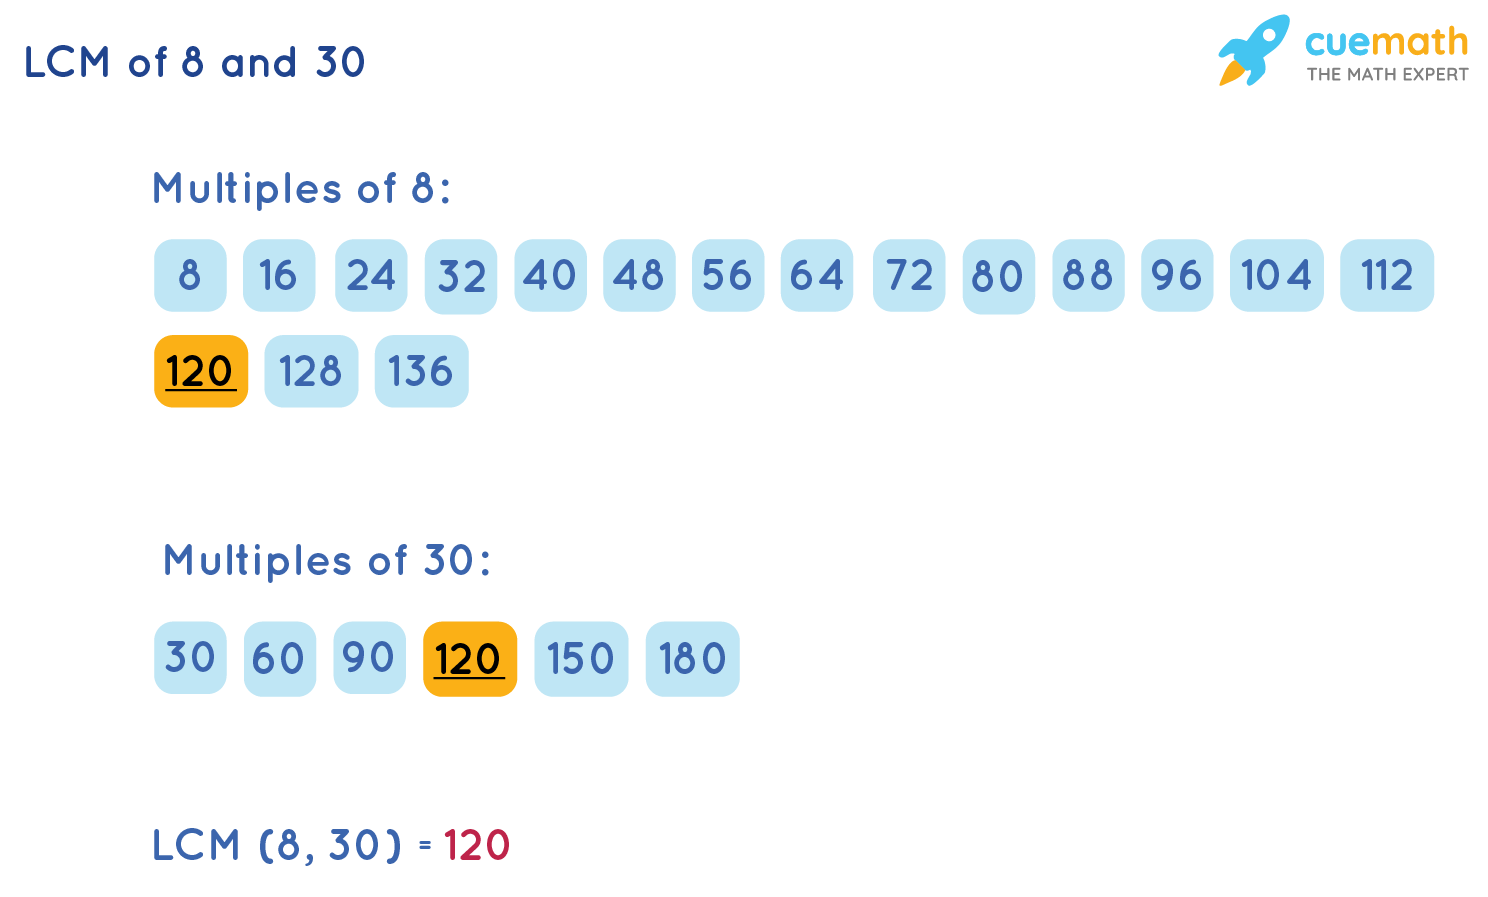 LCM of 8 and 30 by Listing Method